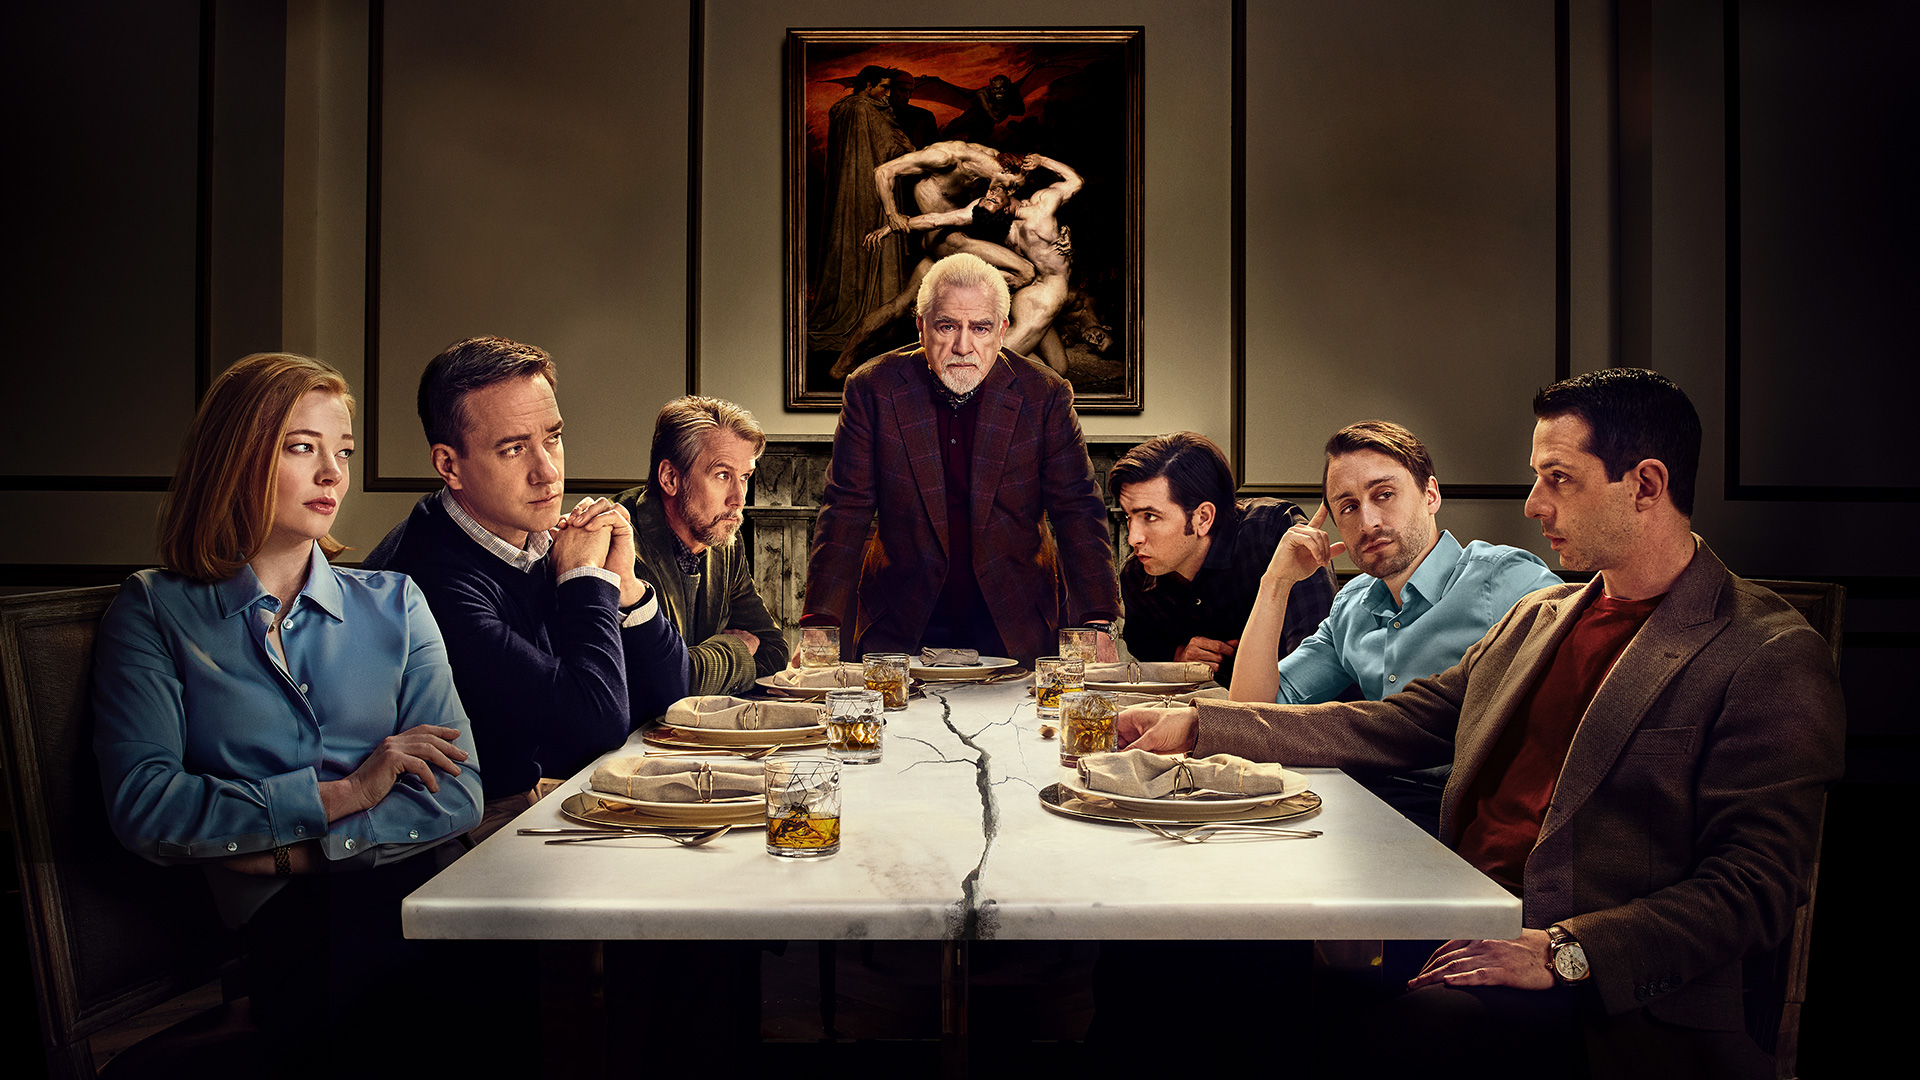 The cast of HBO's Succession